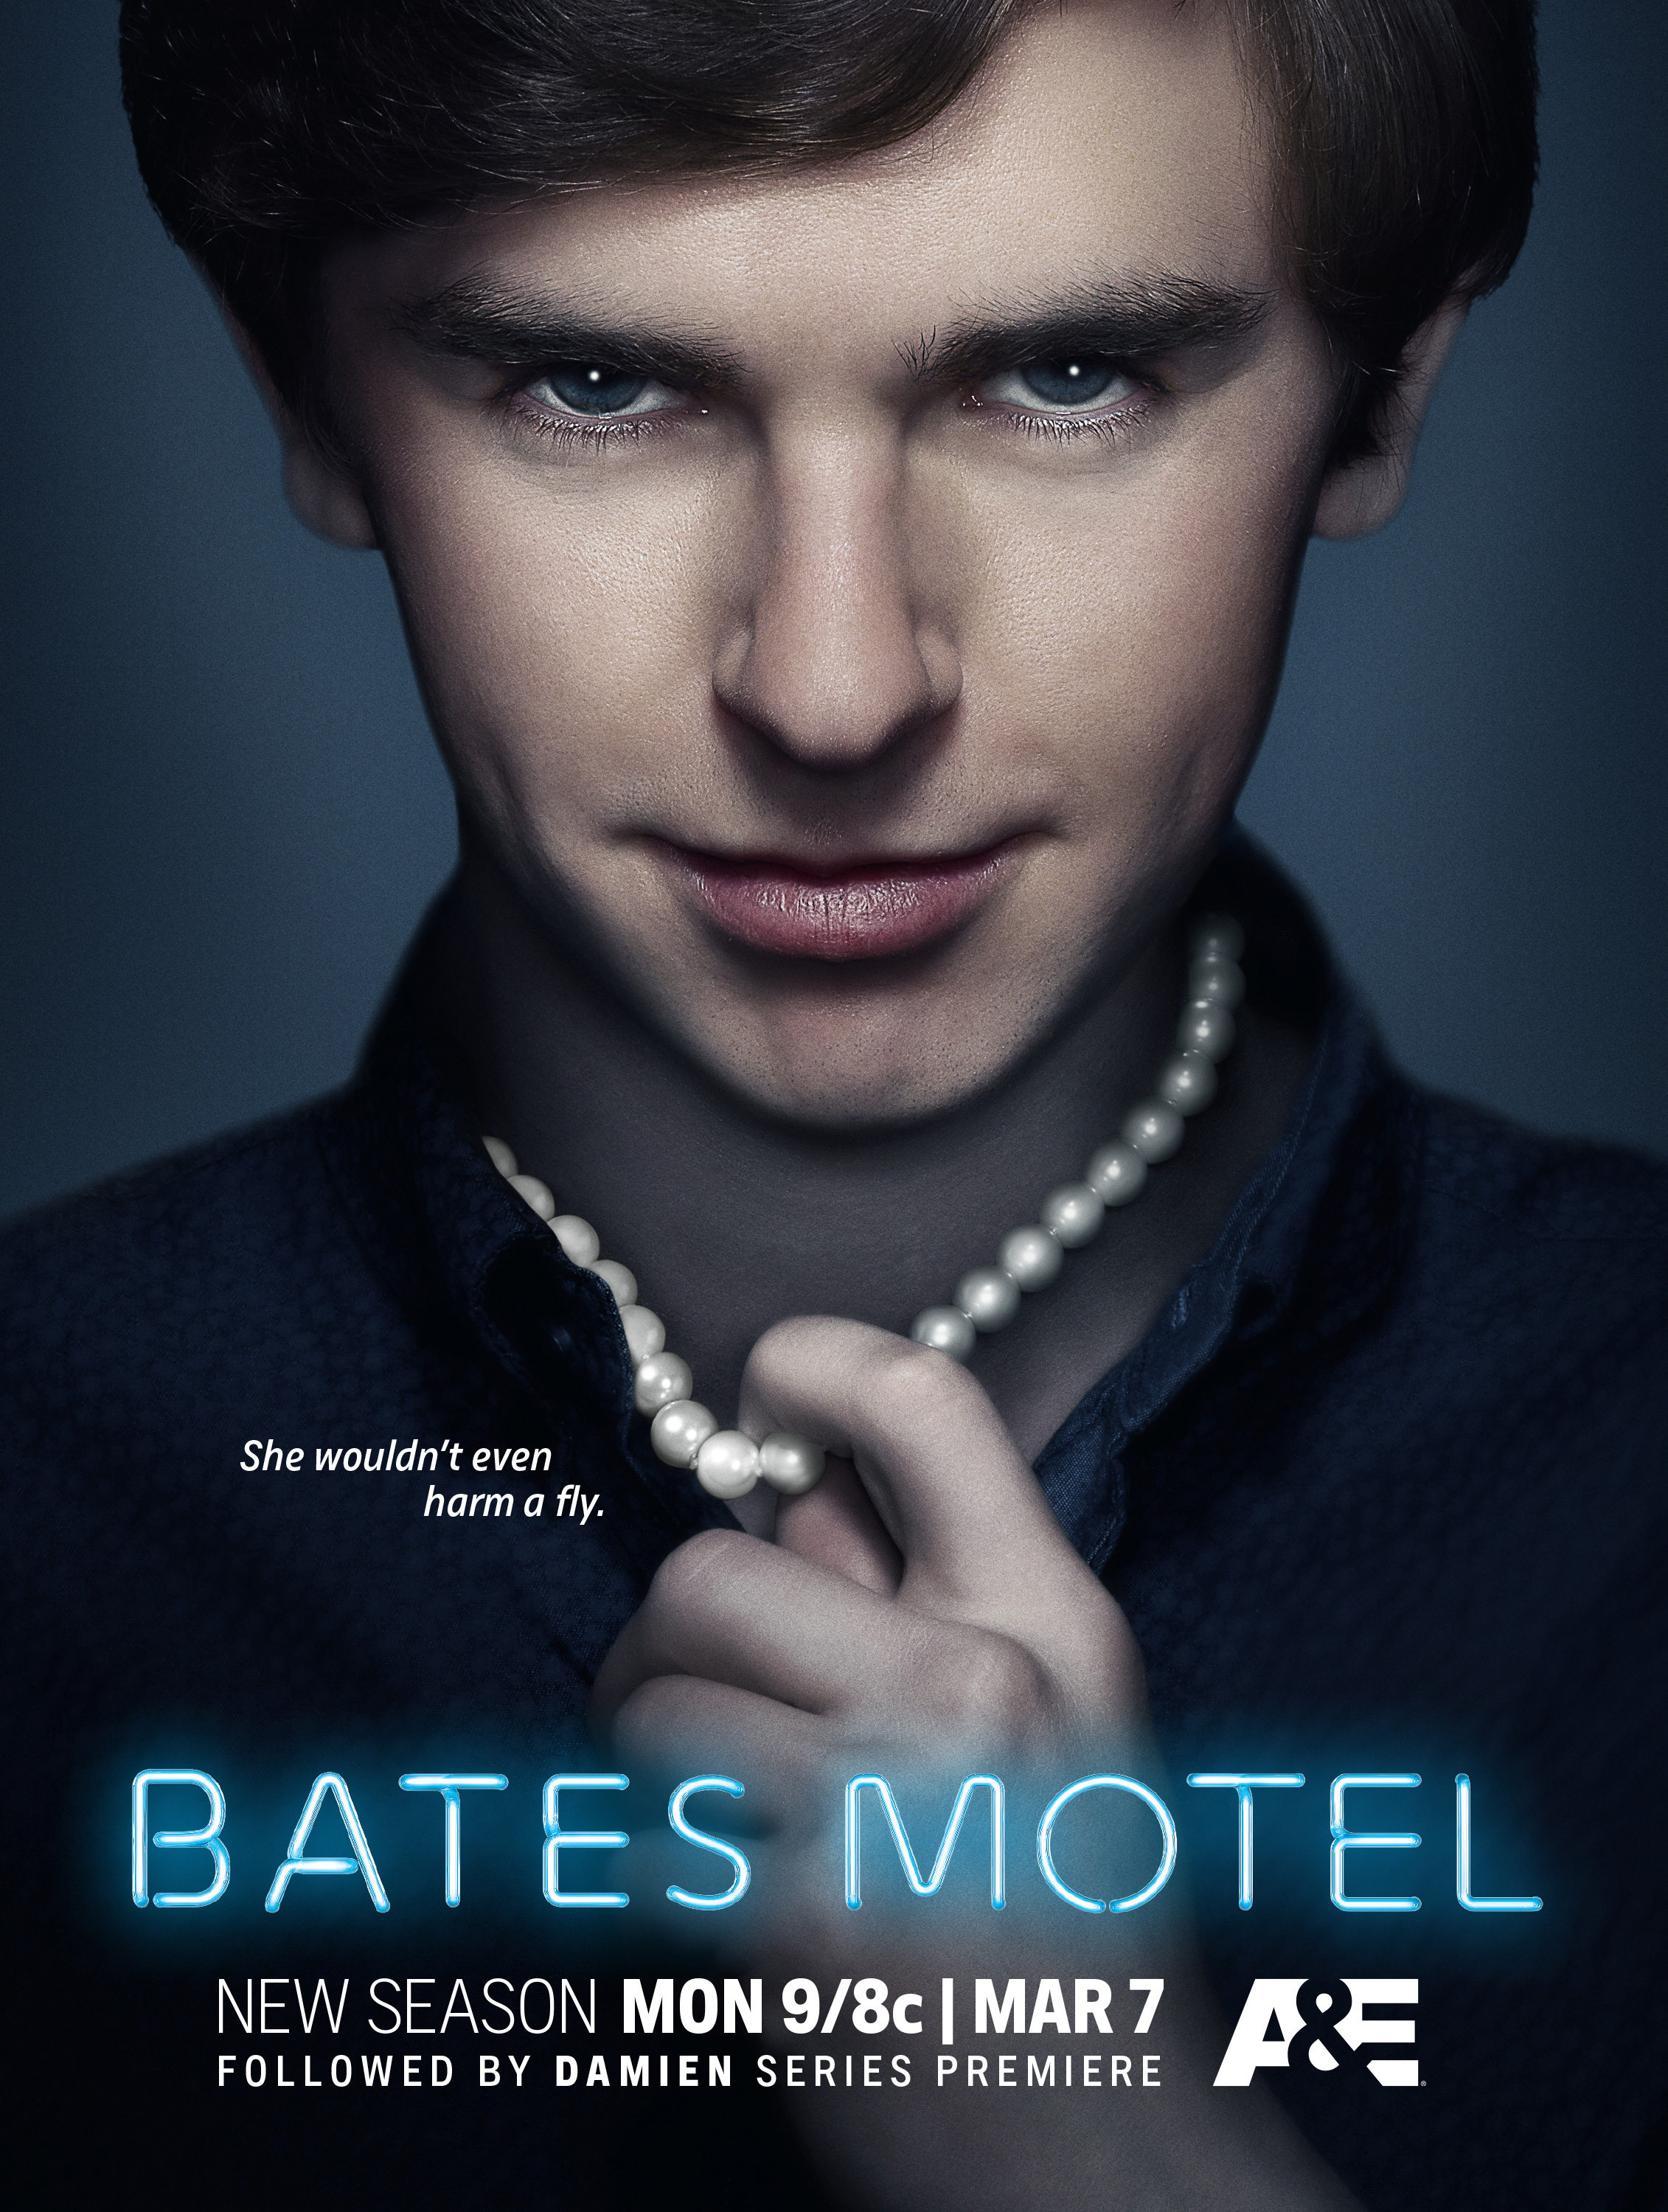 Bates_Motel_Key_Art_Premiere_custom_tune_in_HiRes[2]